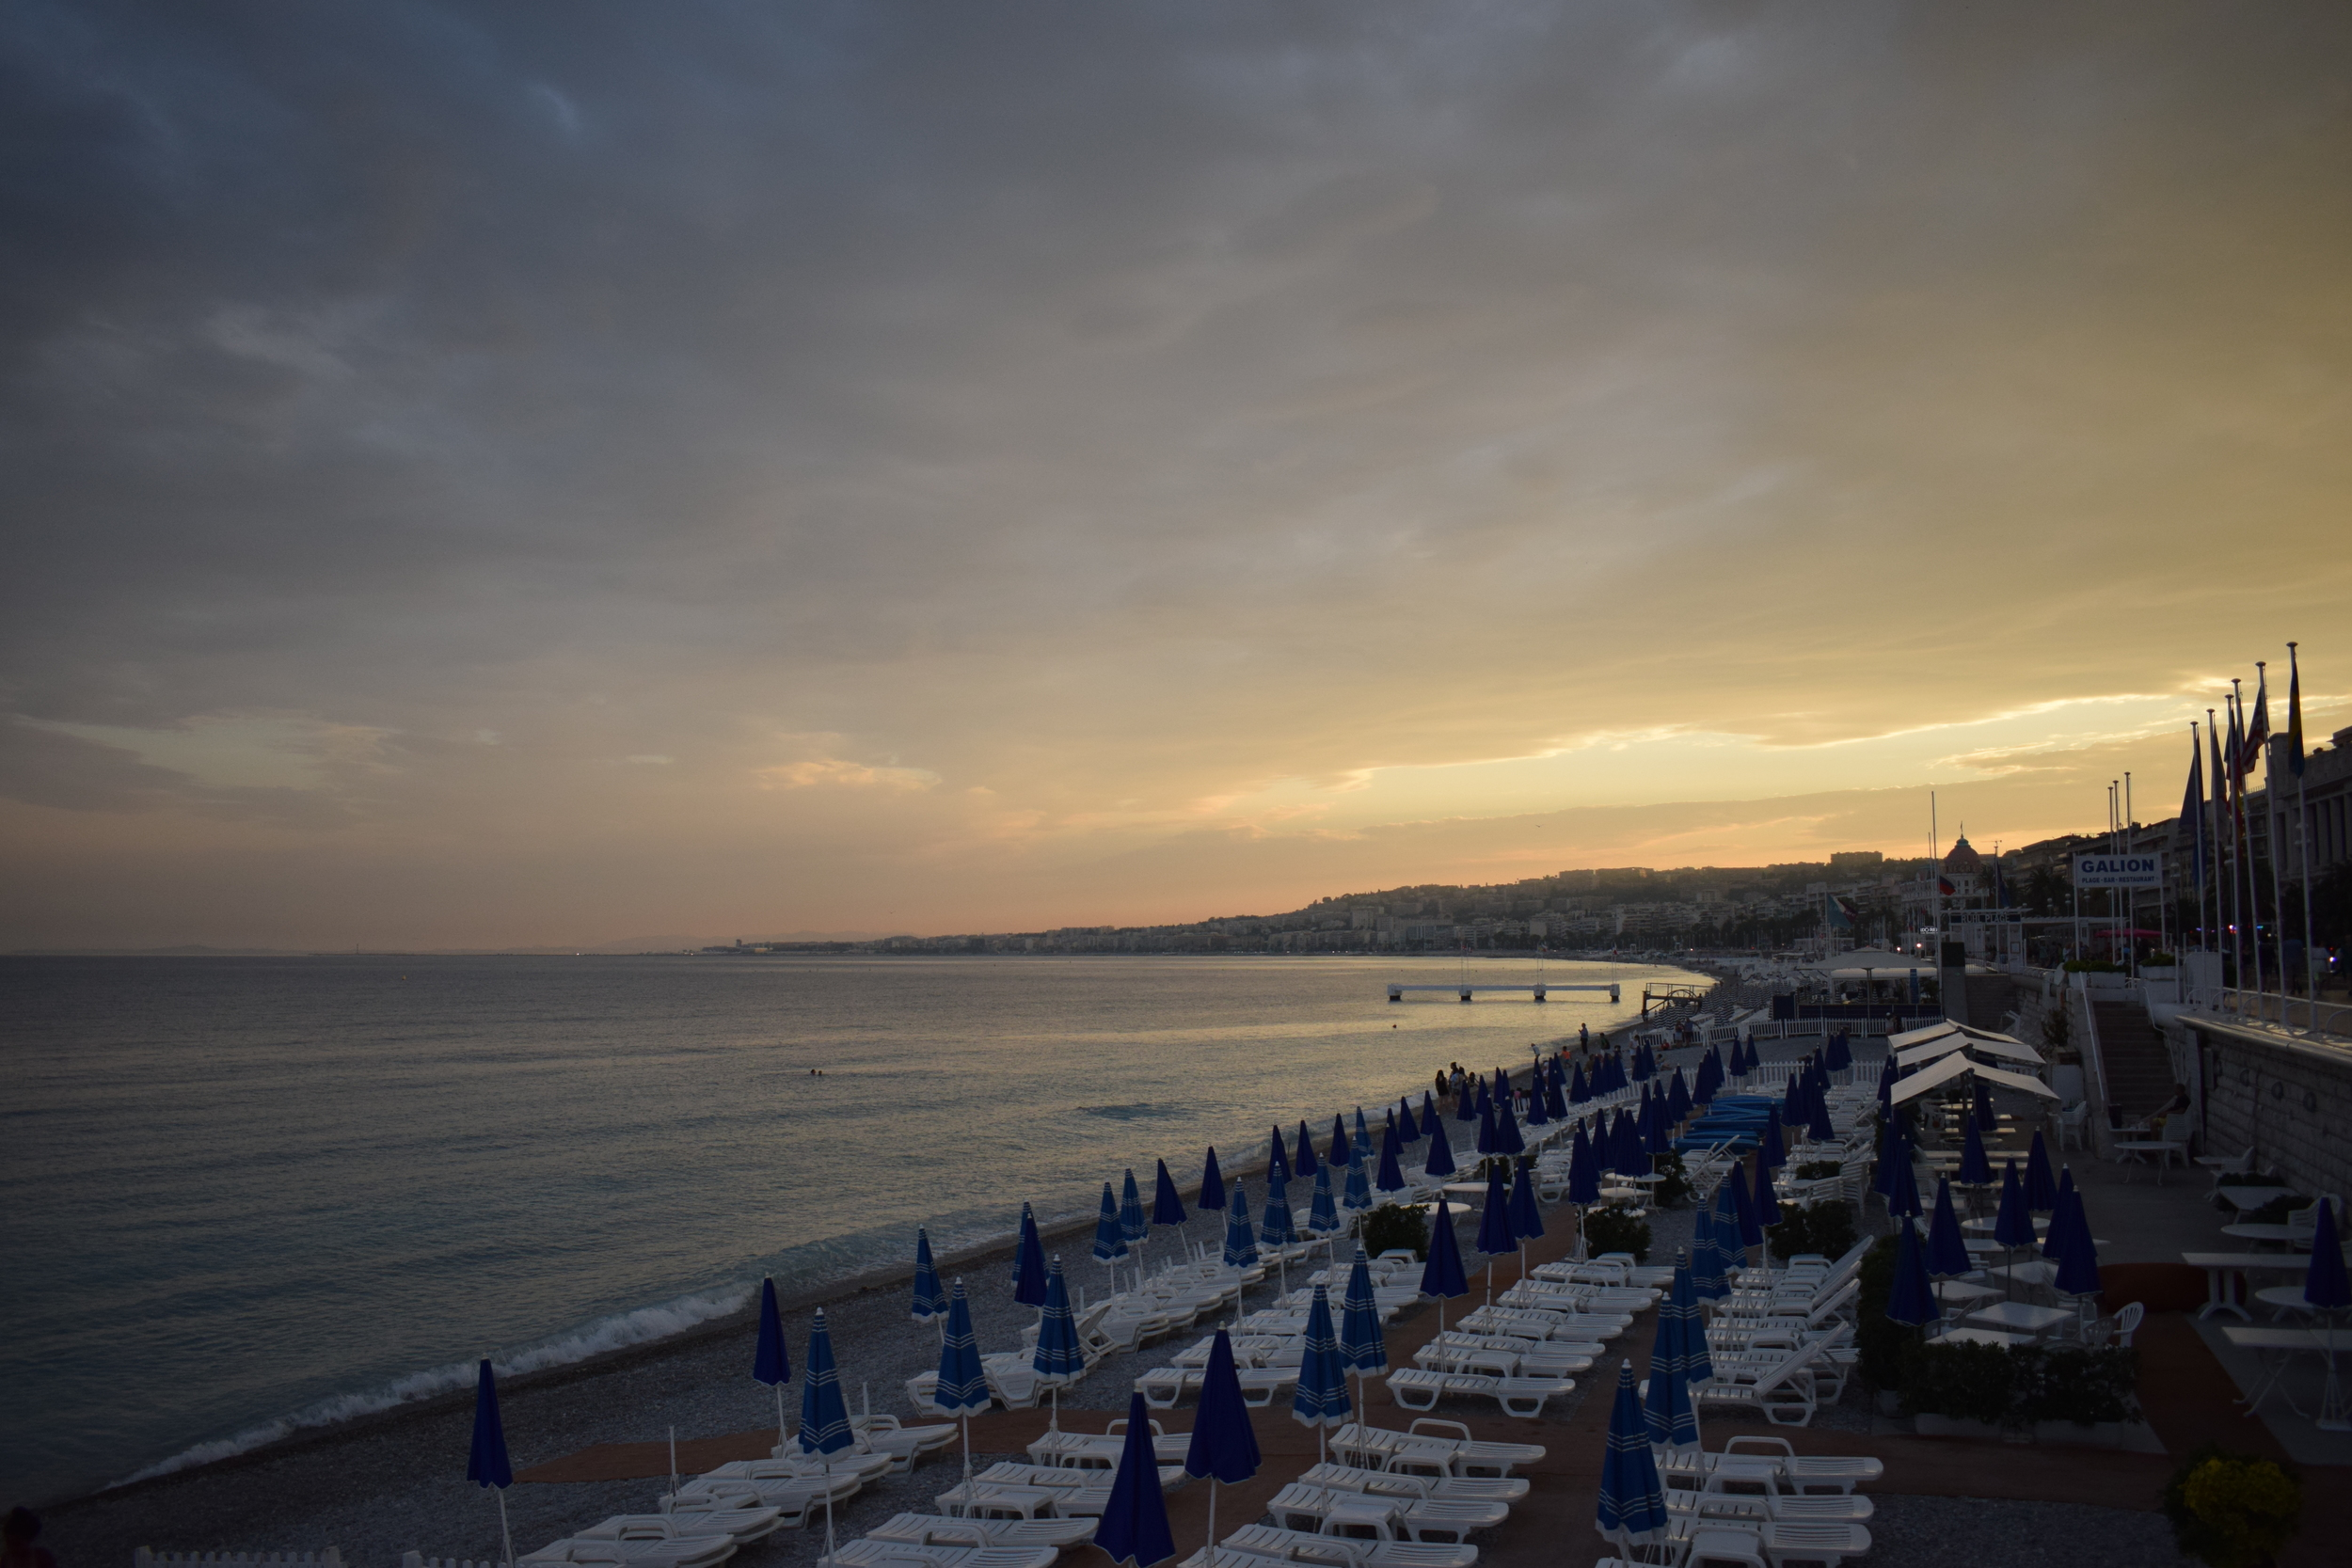 An image that I took in Nice last week on the Promenade des Anglais - the same stretch of coastline where 84 people were murdered on Thursday evening. You can also see the image on my    Instagram   .